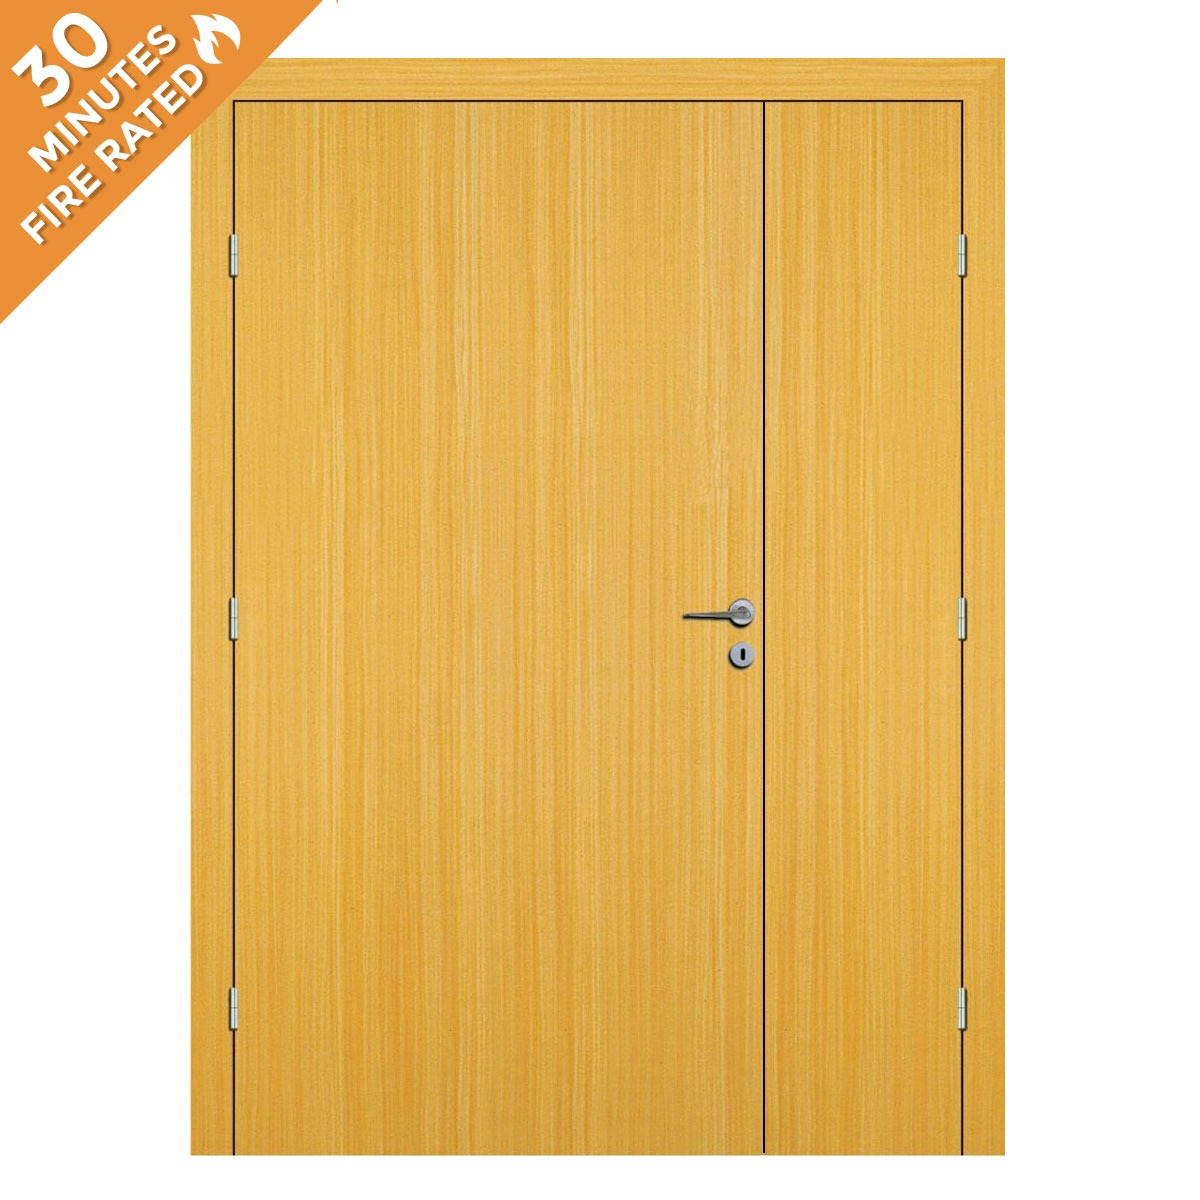 Koto Hospital Door FD30